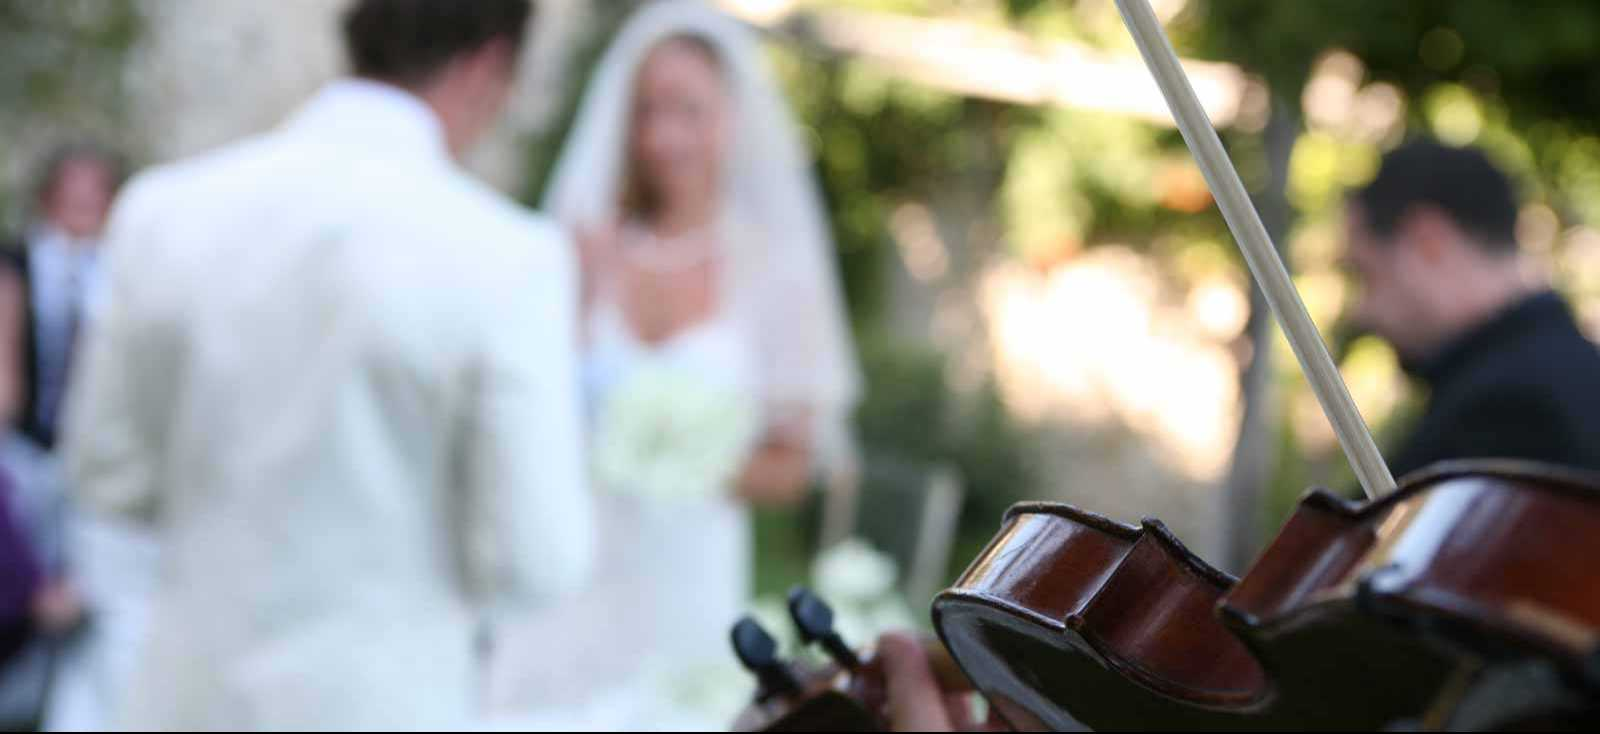 Ceremony And Reception Music: Music For Reception In Italy